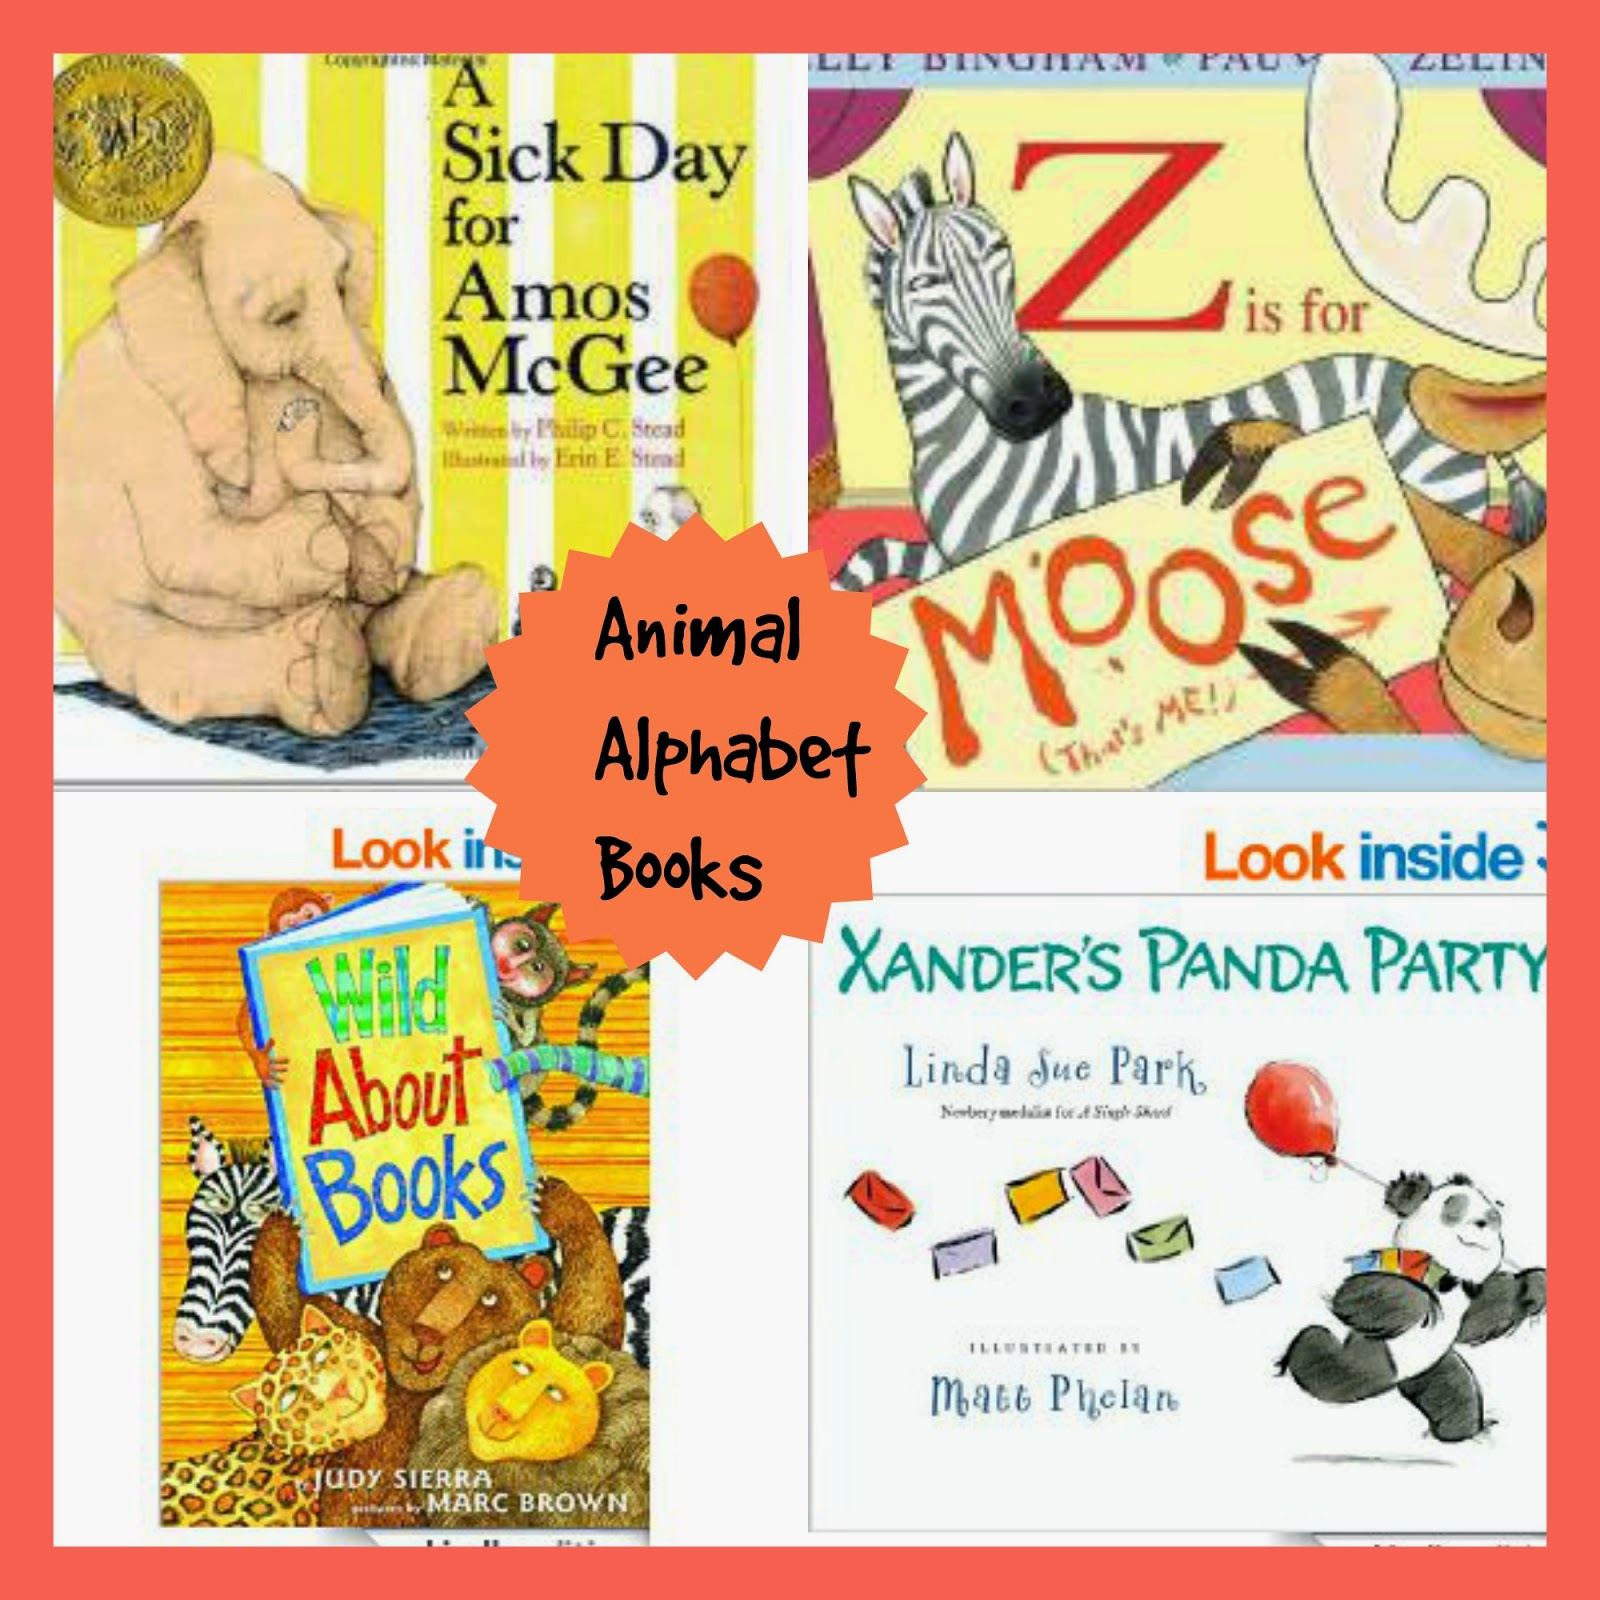 Animal Alphabet Books, Kings and Scotland